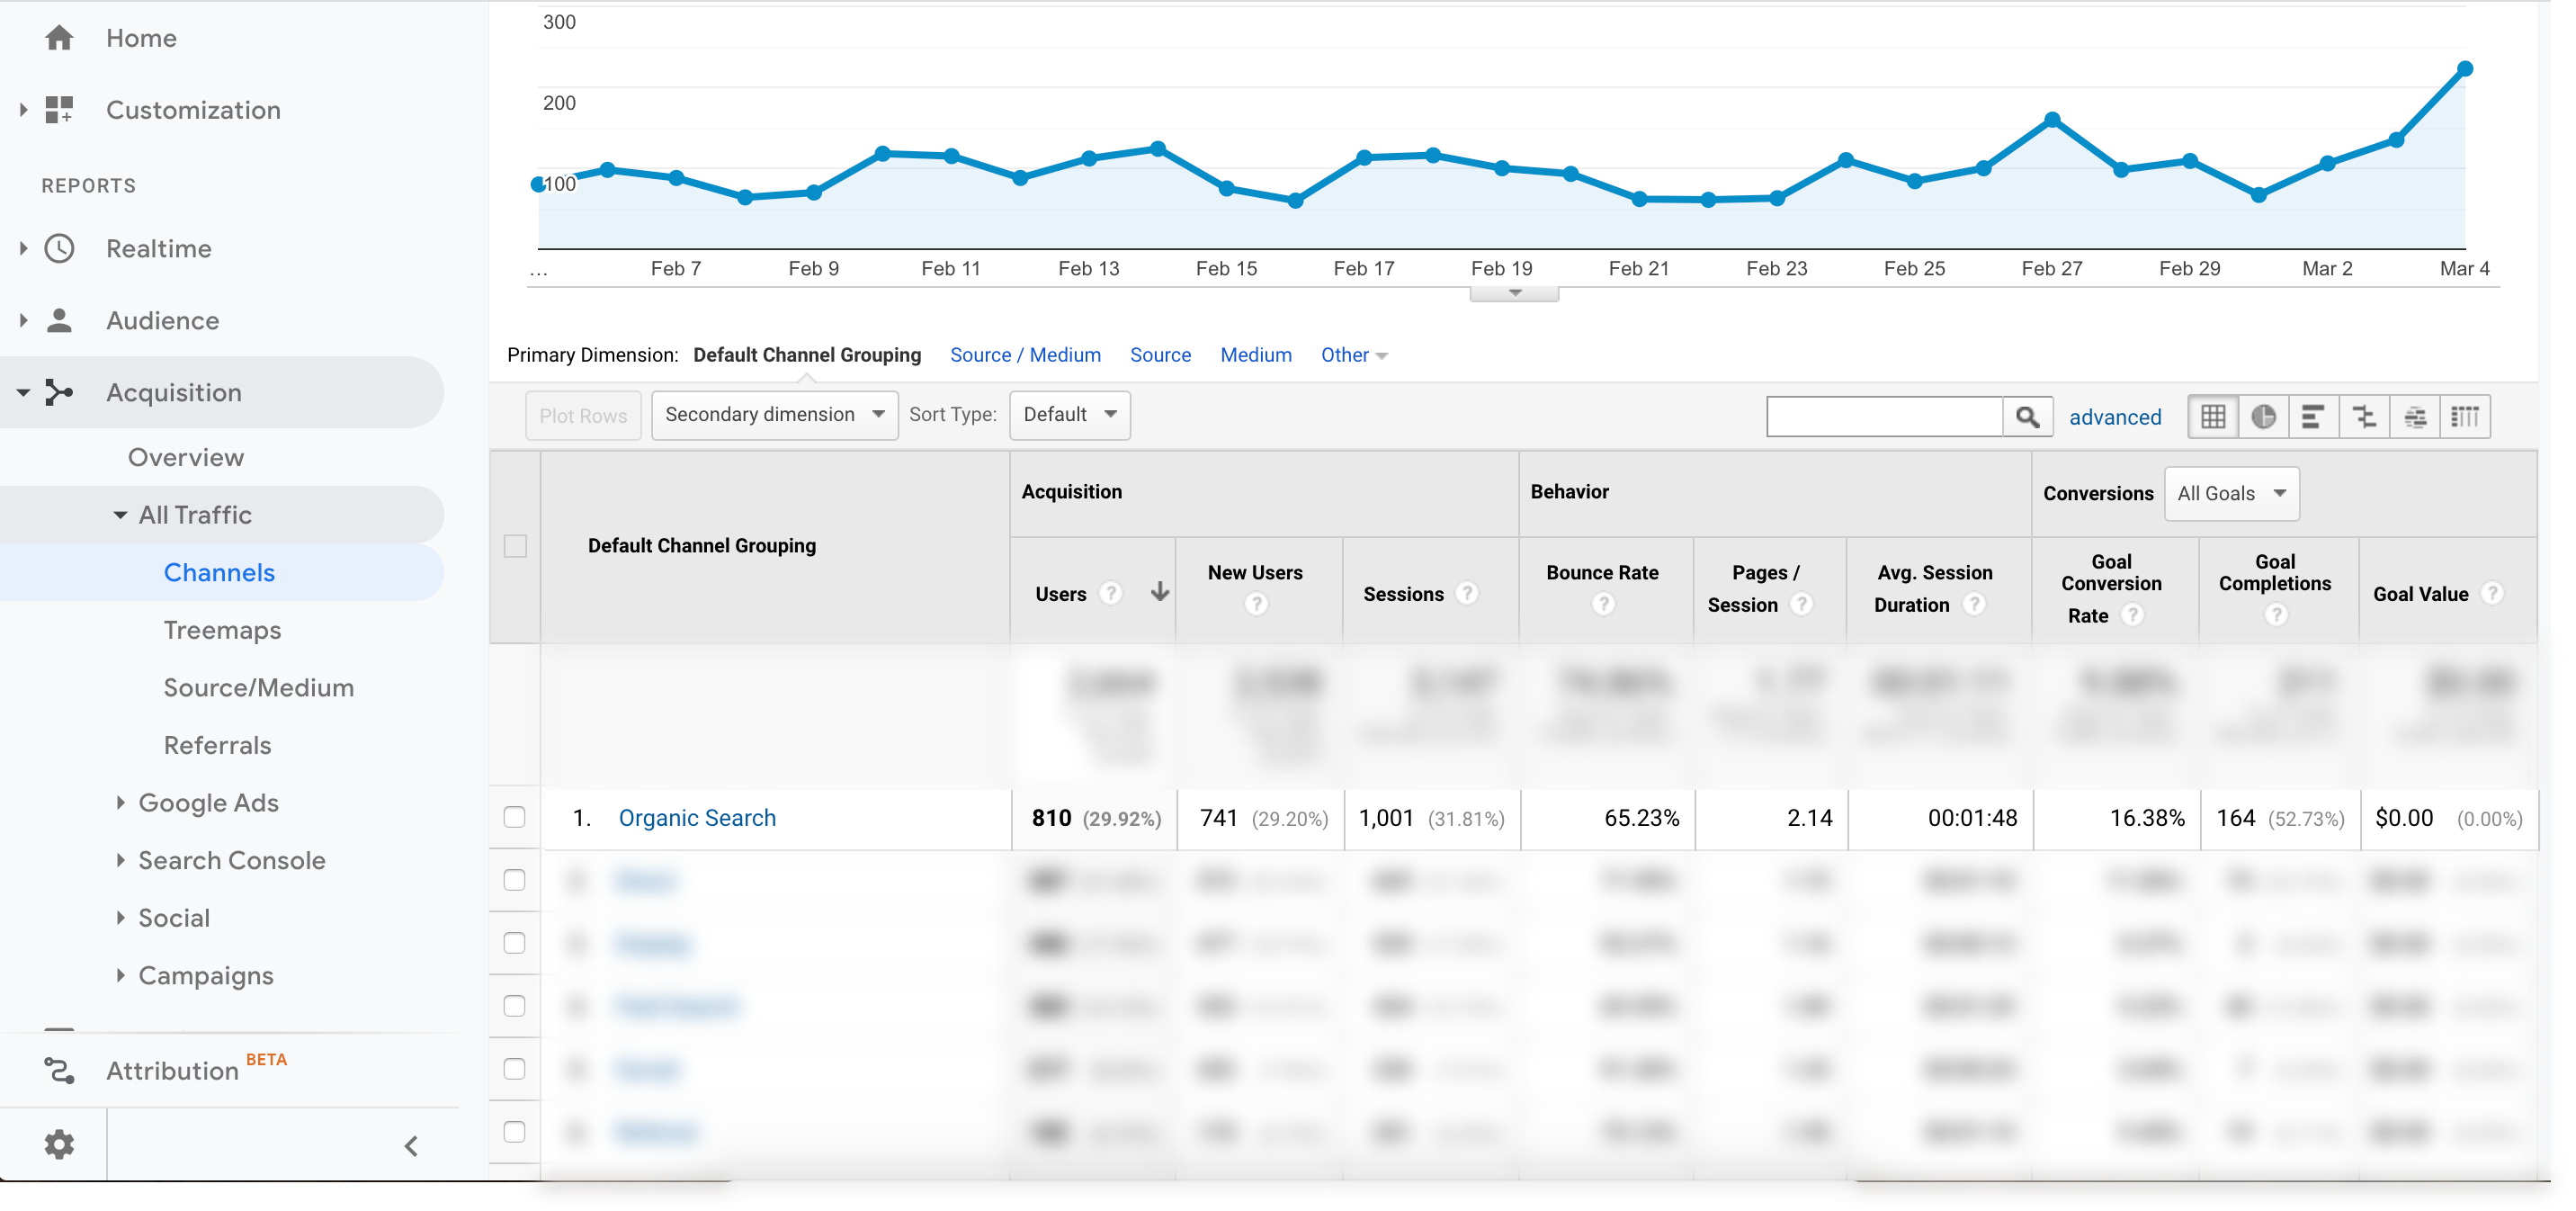 Google Analytics Default Channel Grouping report focusing on Organic Search